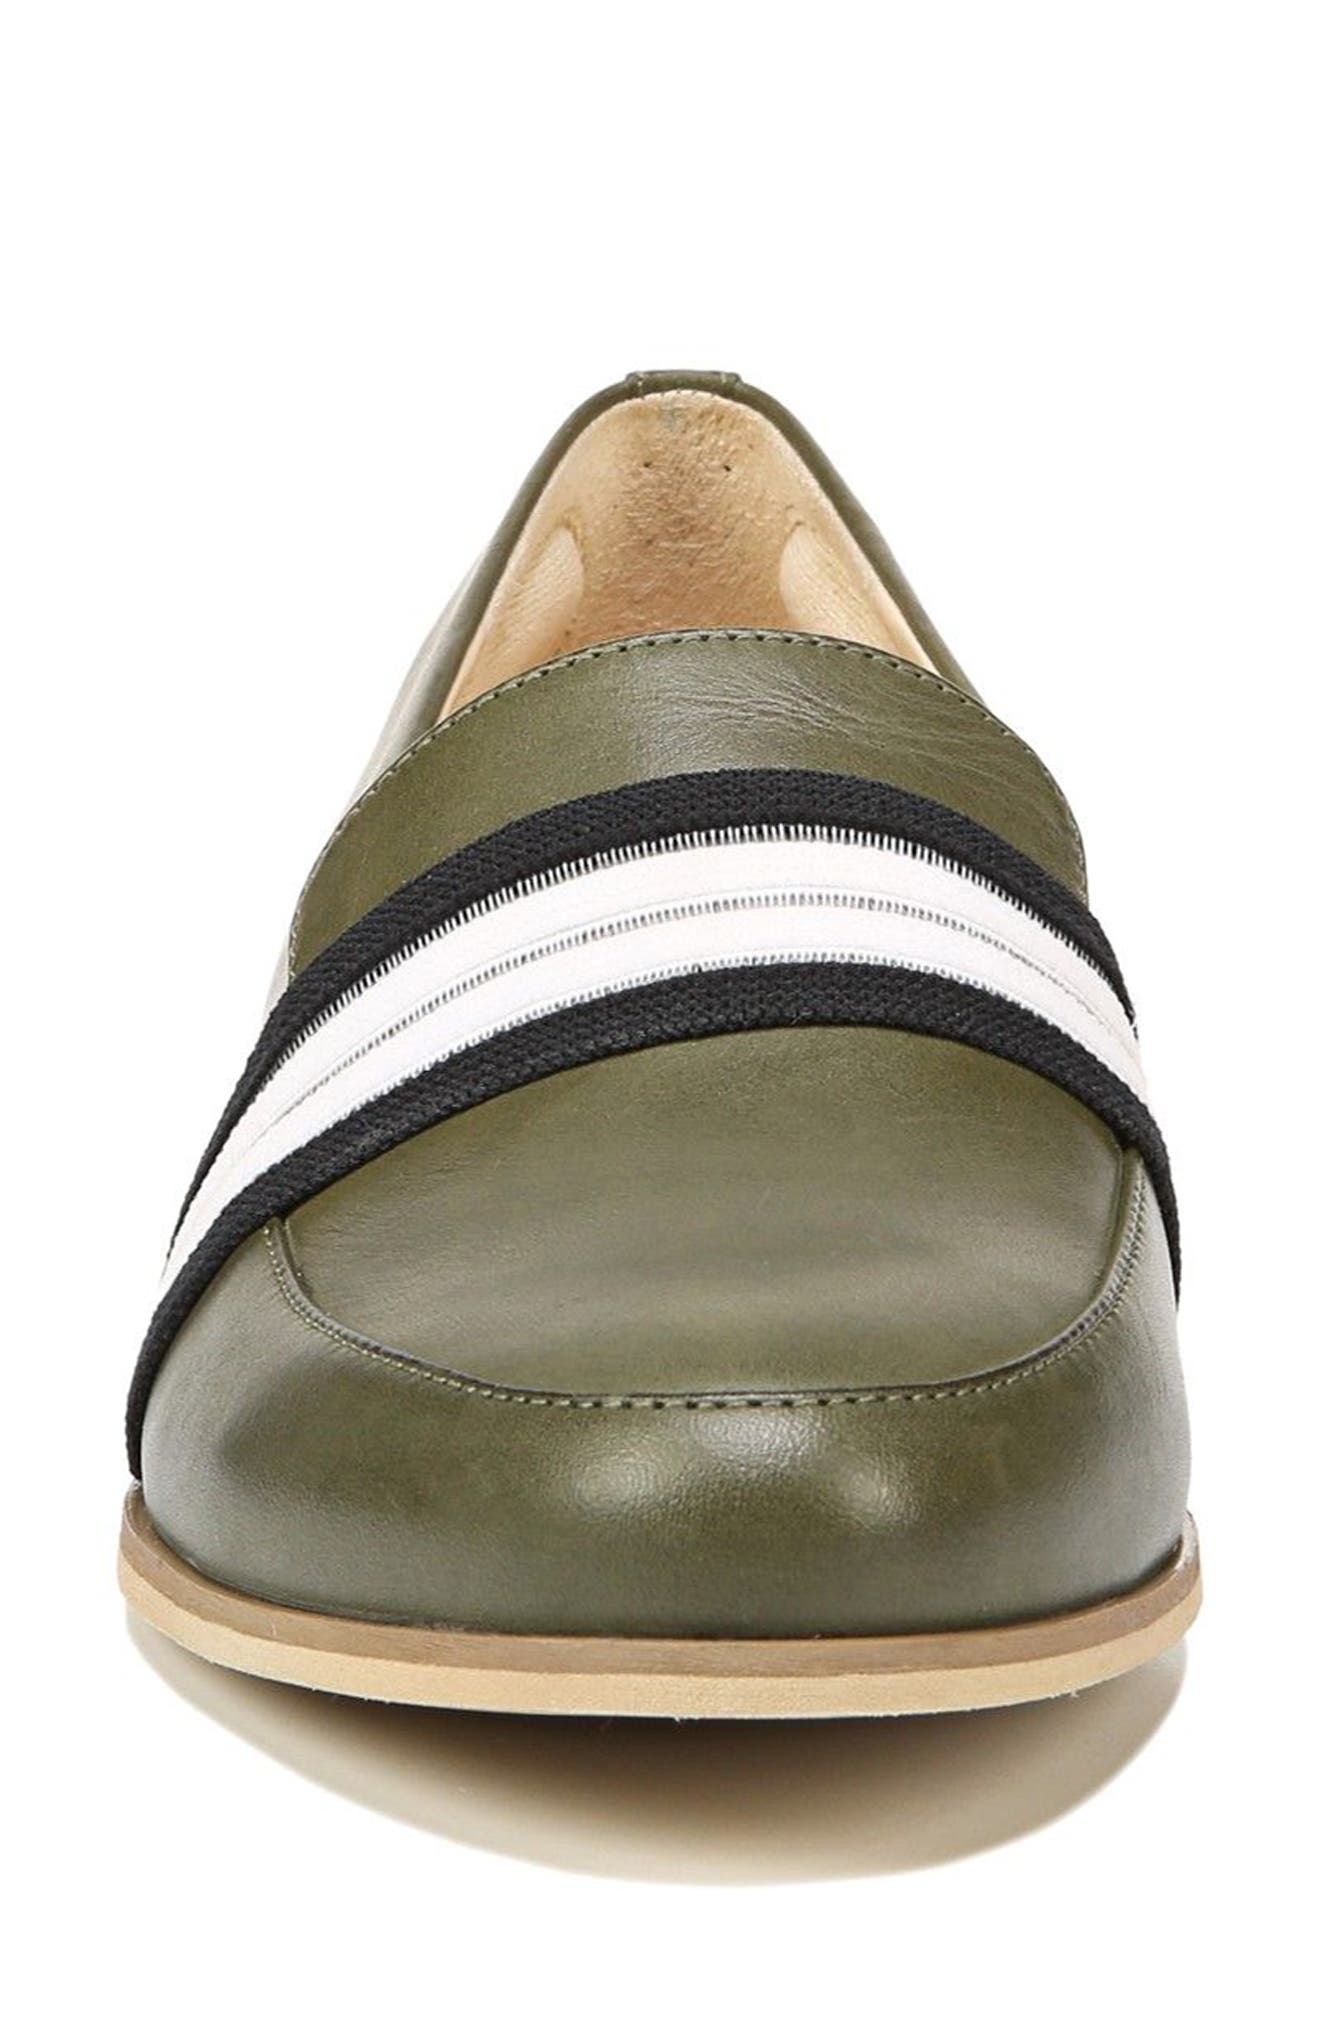 Everett Band Loafer,                             Alternate thumbnail 4, color,                             Green Leather